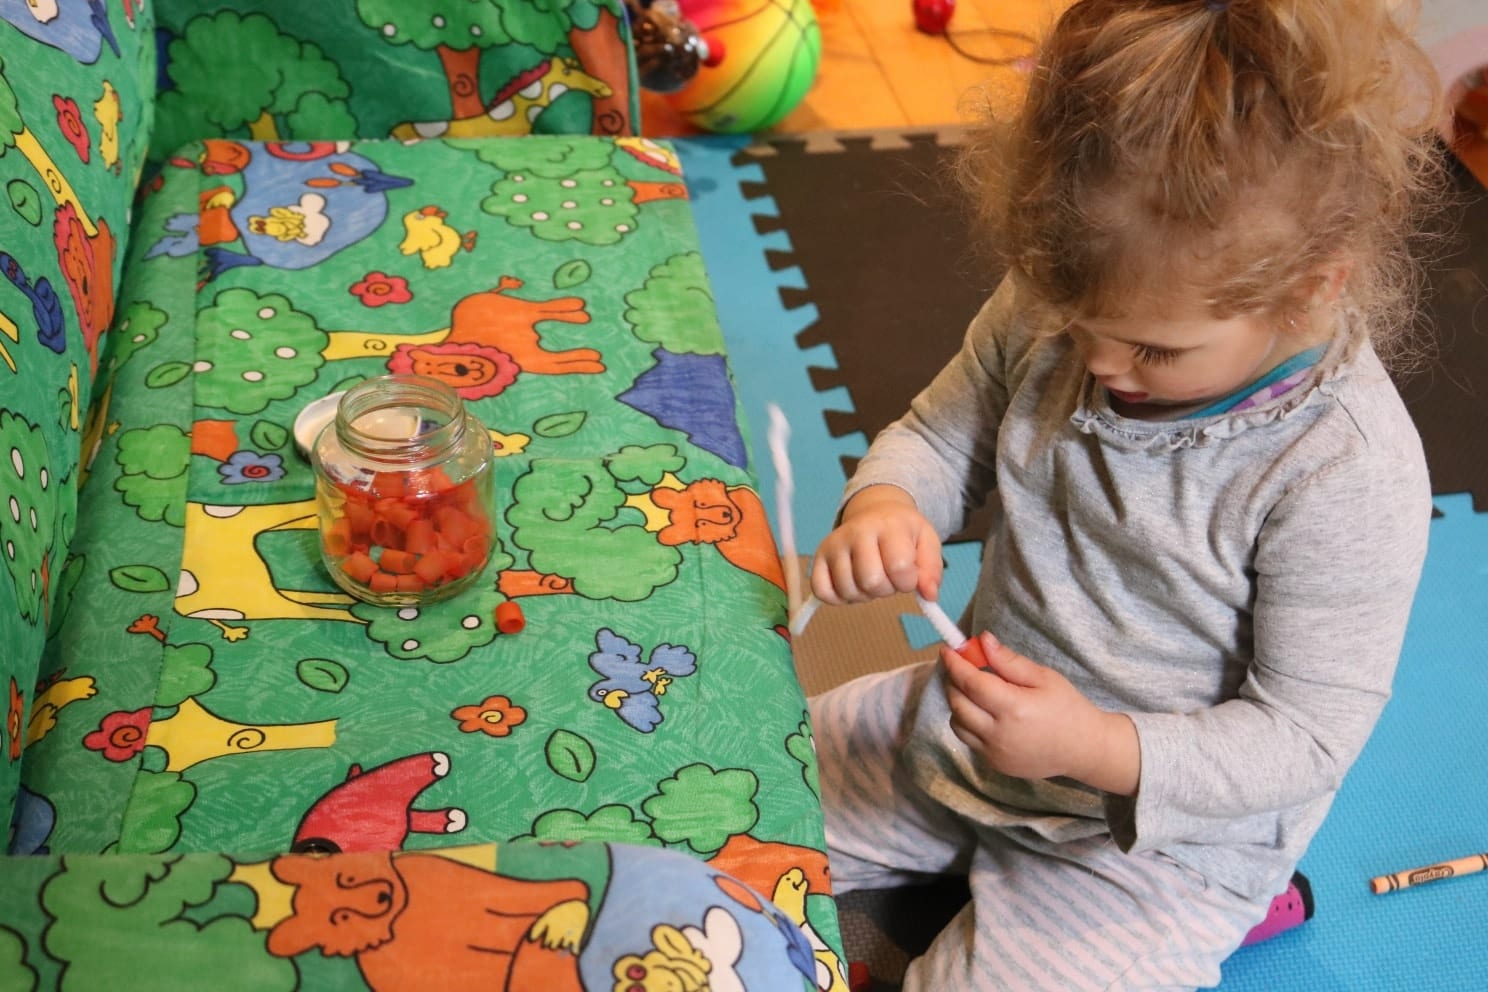 Toddler in grey shirt and pants threading colored noodles onto a pipe cleaner